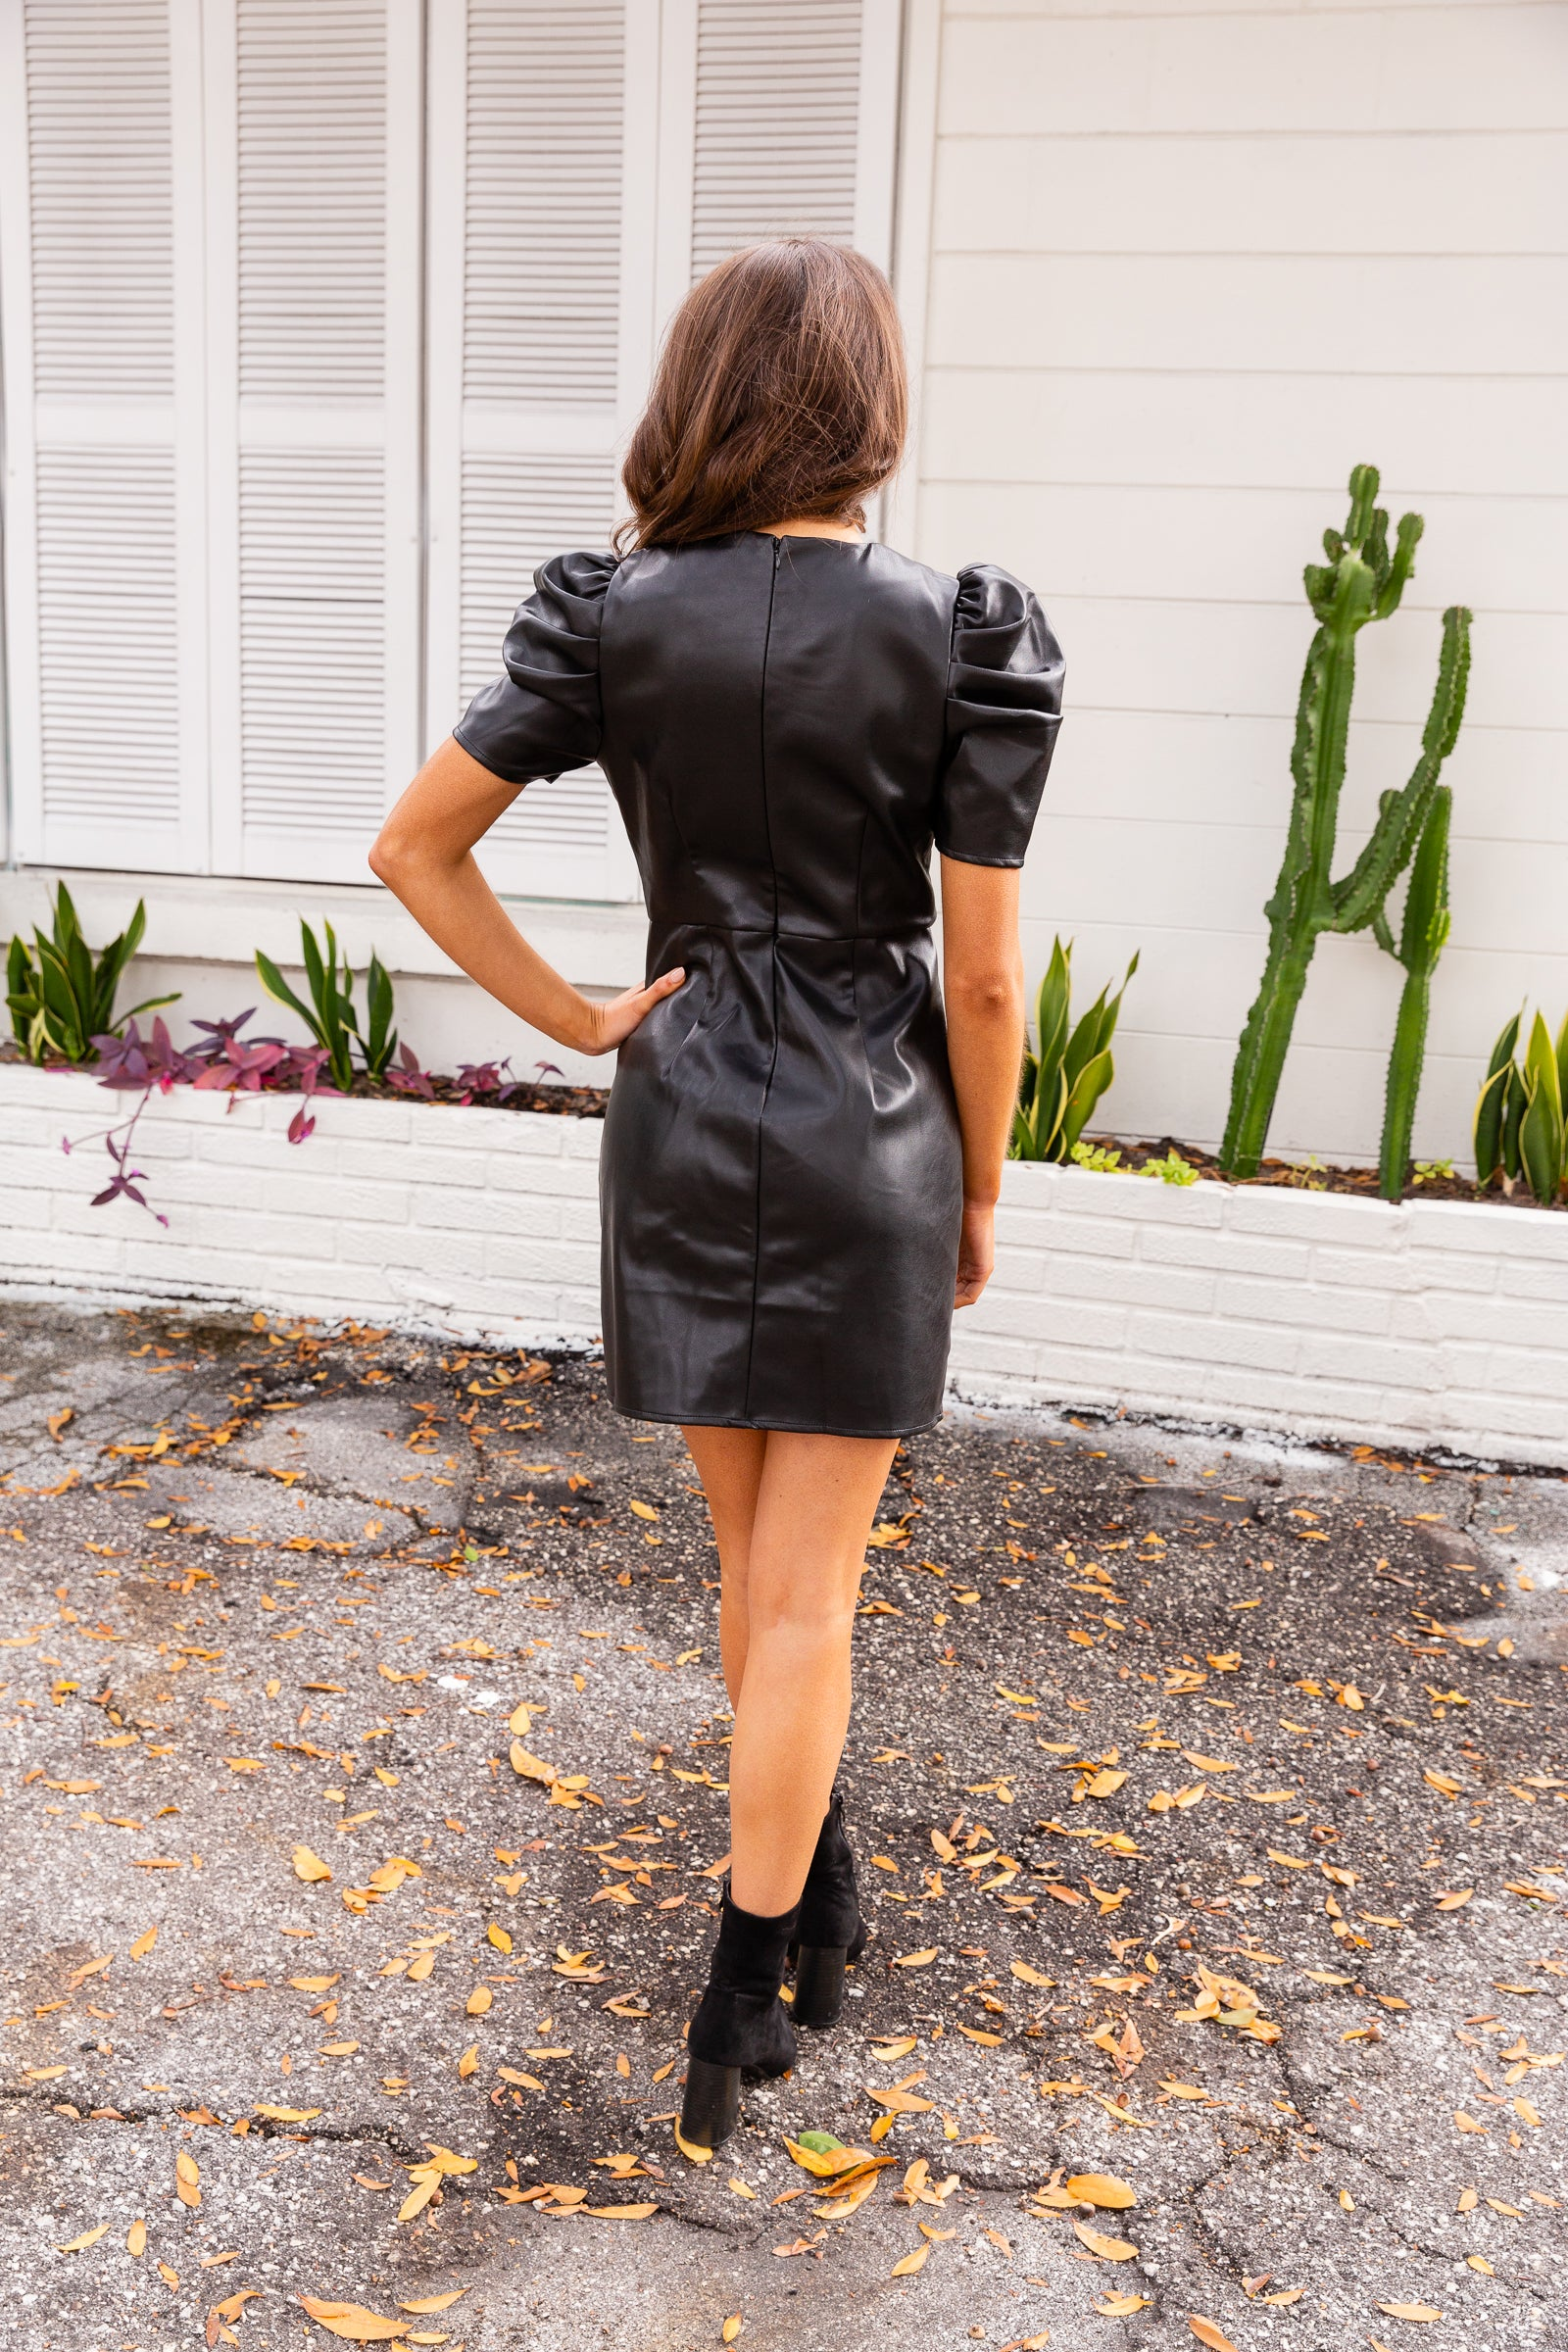 Short puffed shoulder sleeves attach to a high u-neckline on a fitted and darted bodice before meeting a fitted waistband and going into a straight mini skirt.